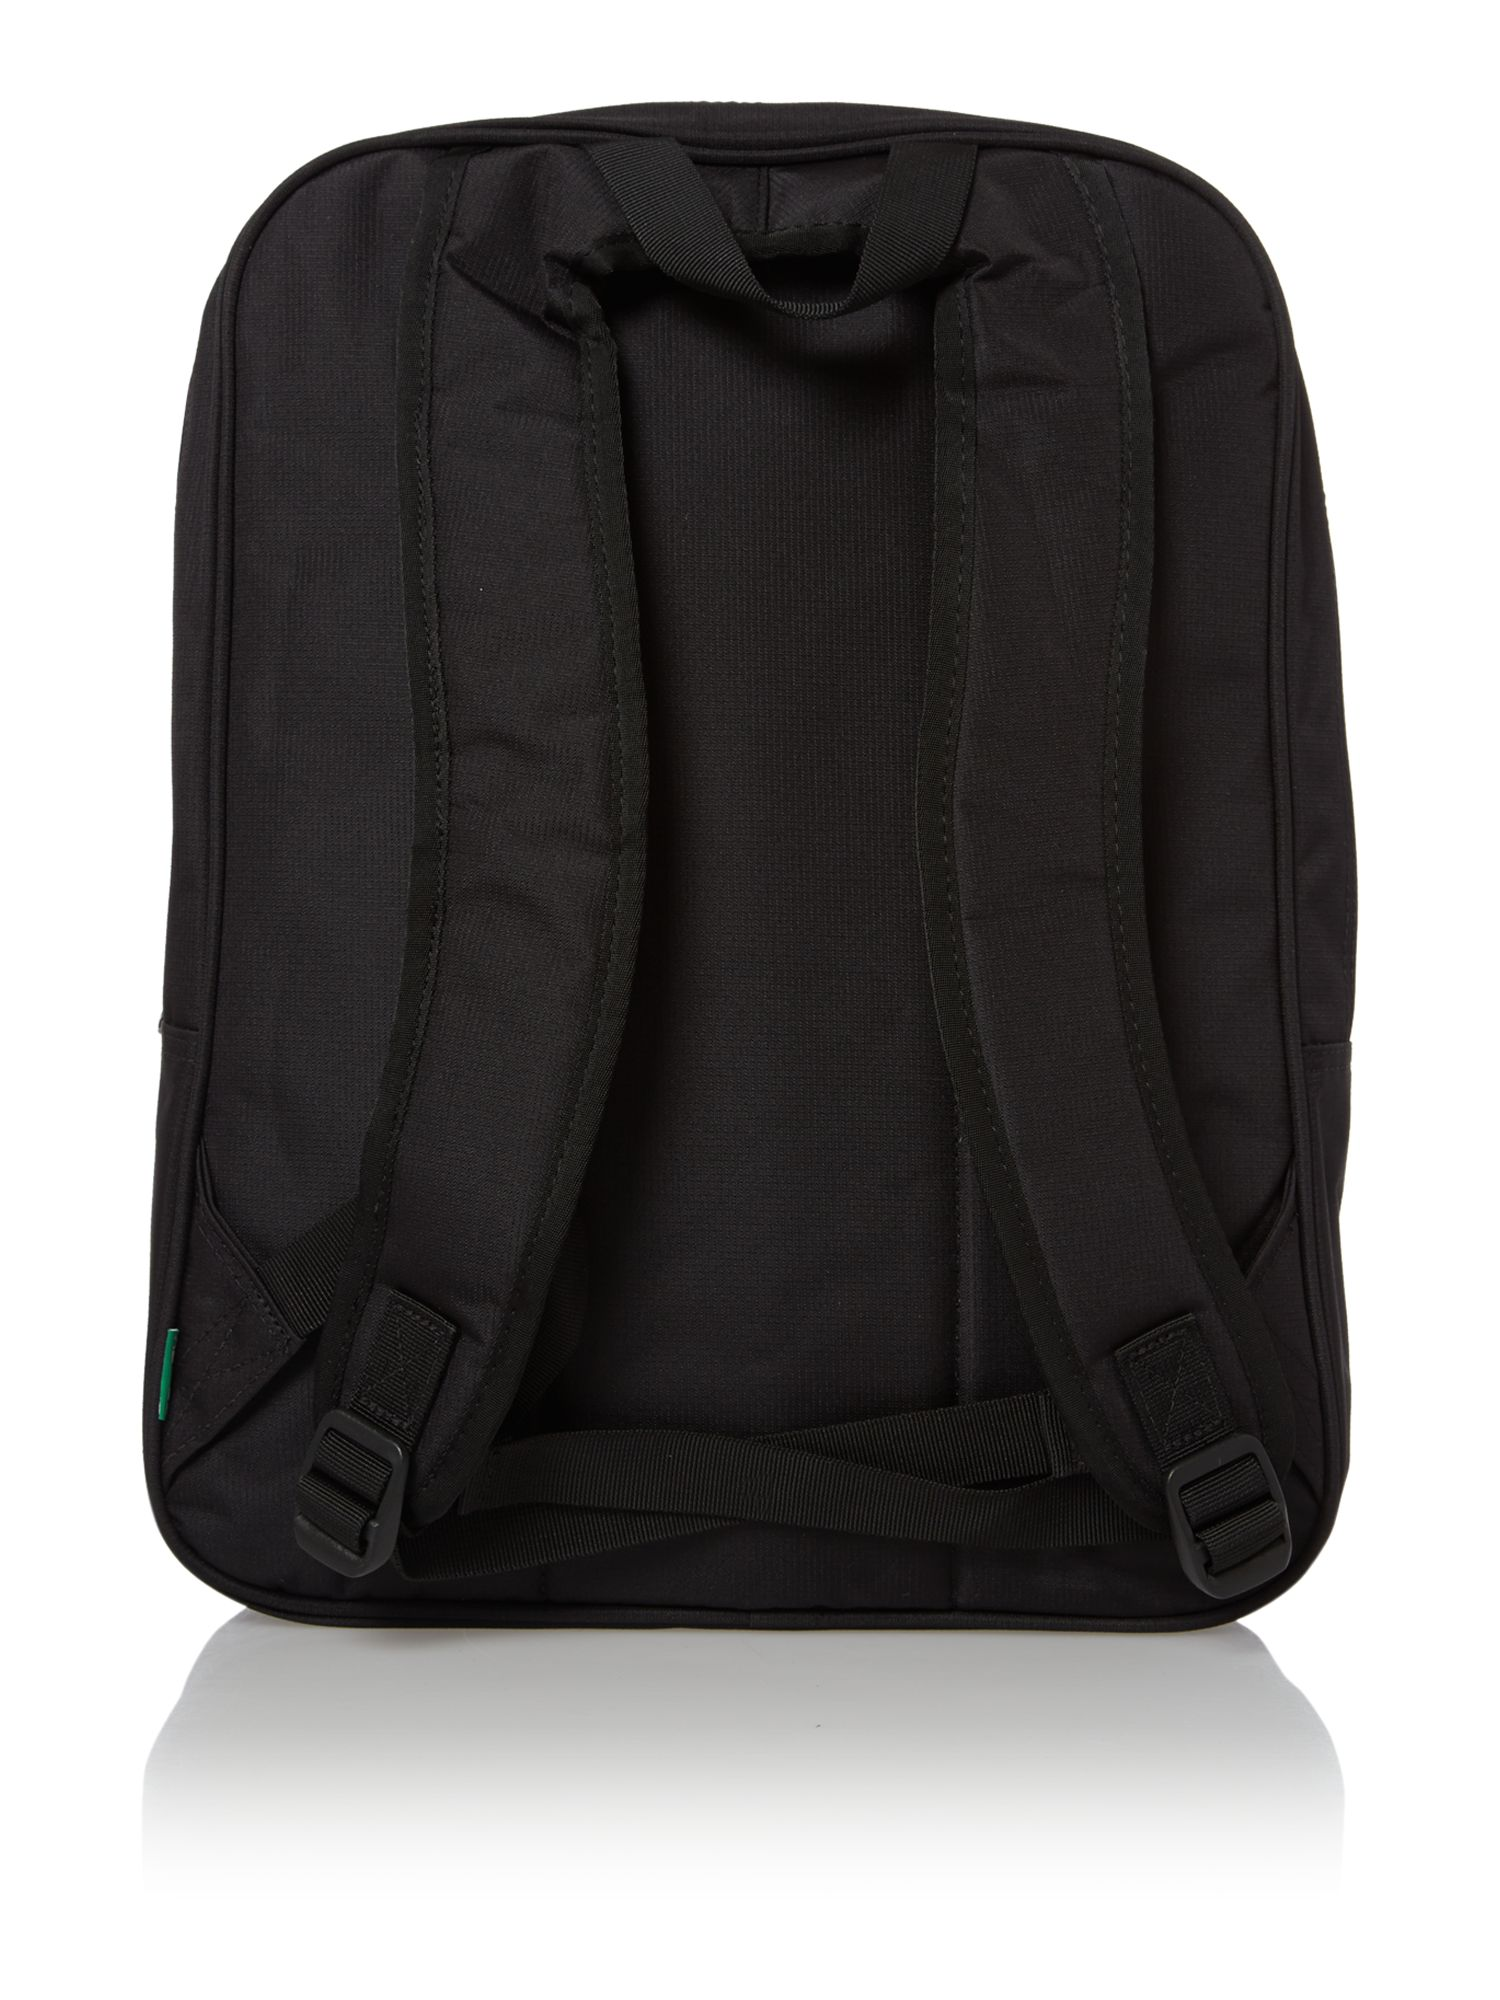 Diso square backpack